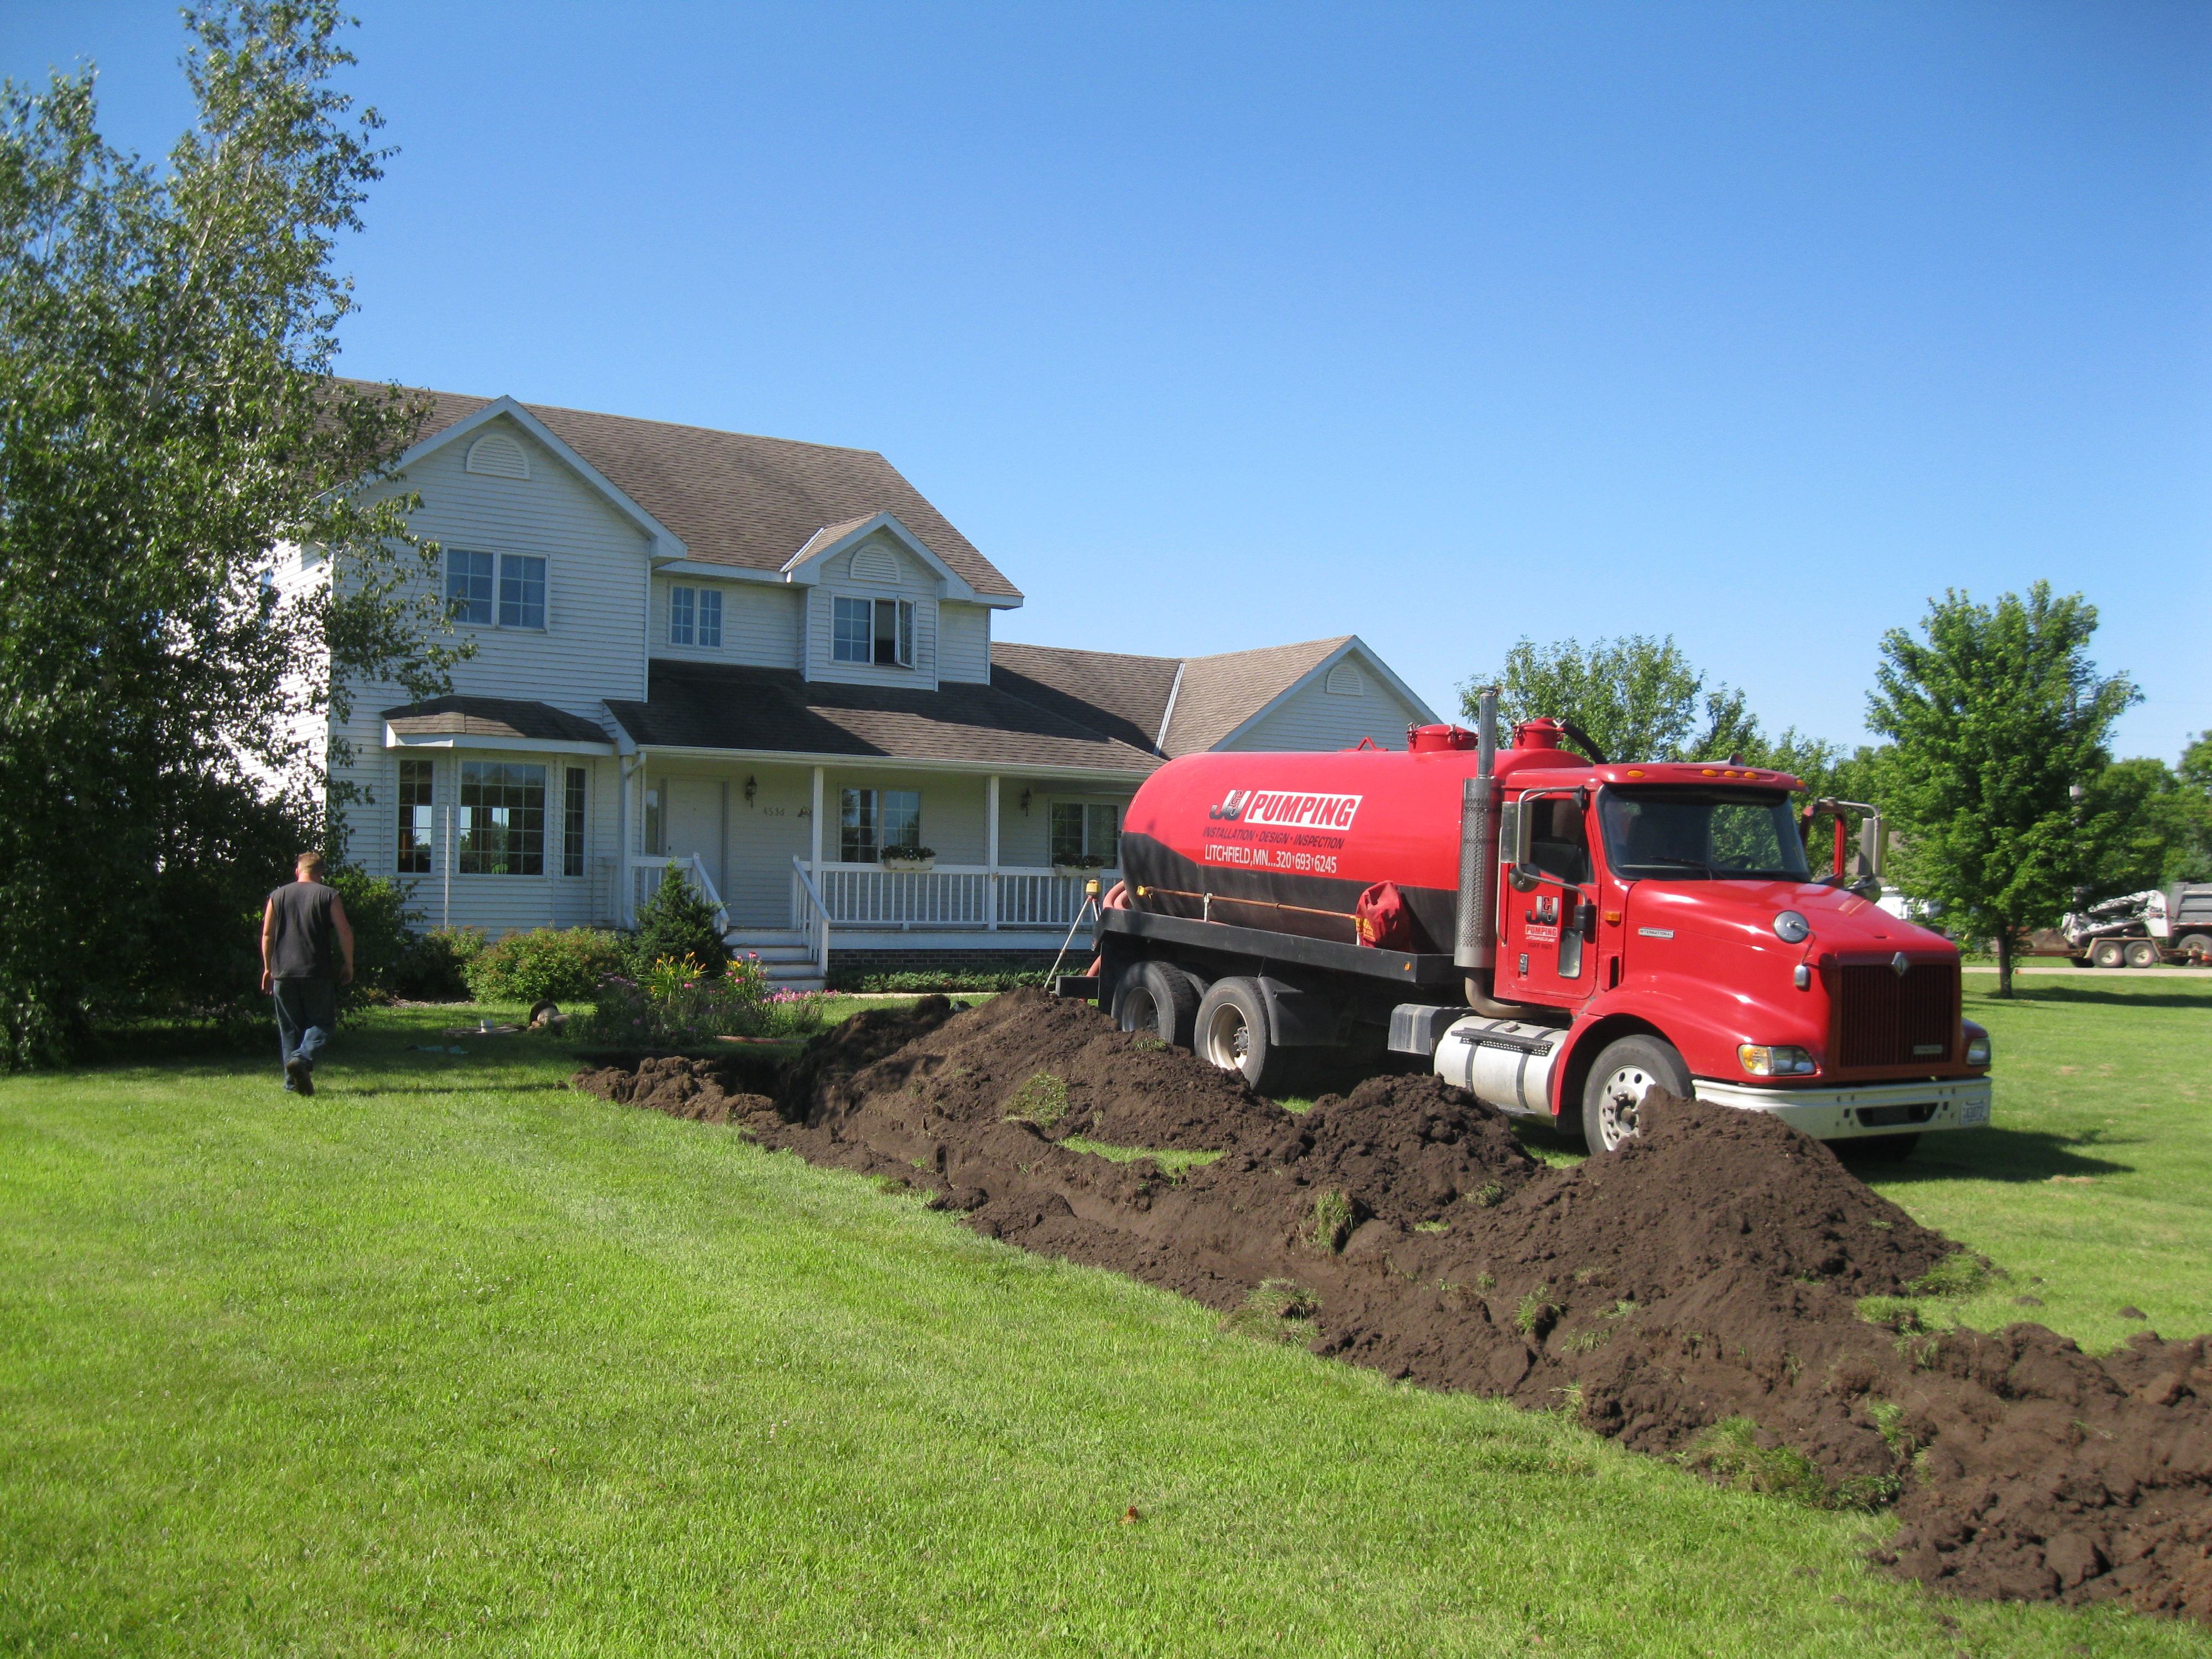 JJ Pumping | A&T Septic & Excavating | Consumer Information